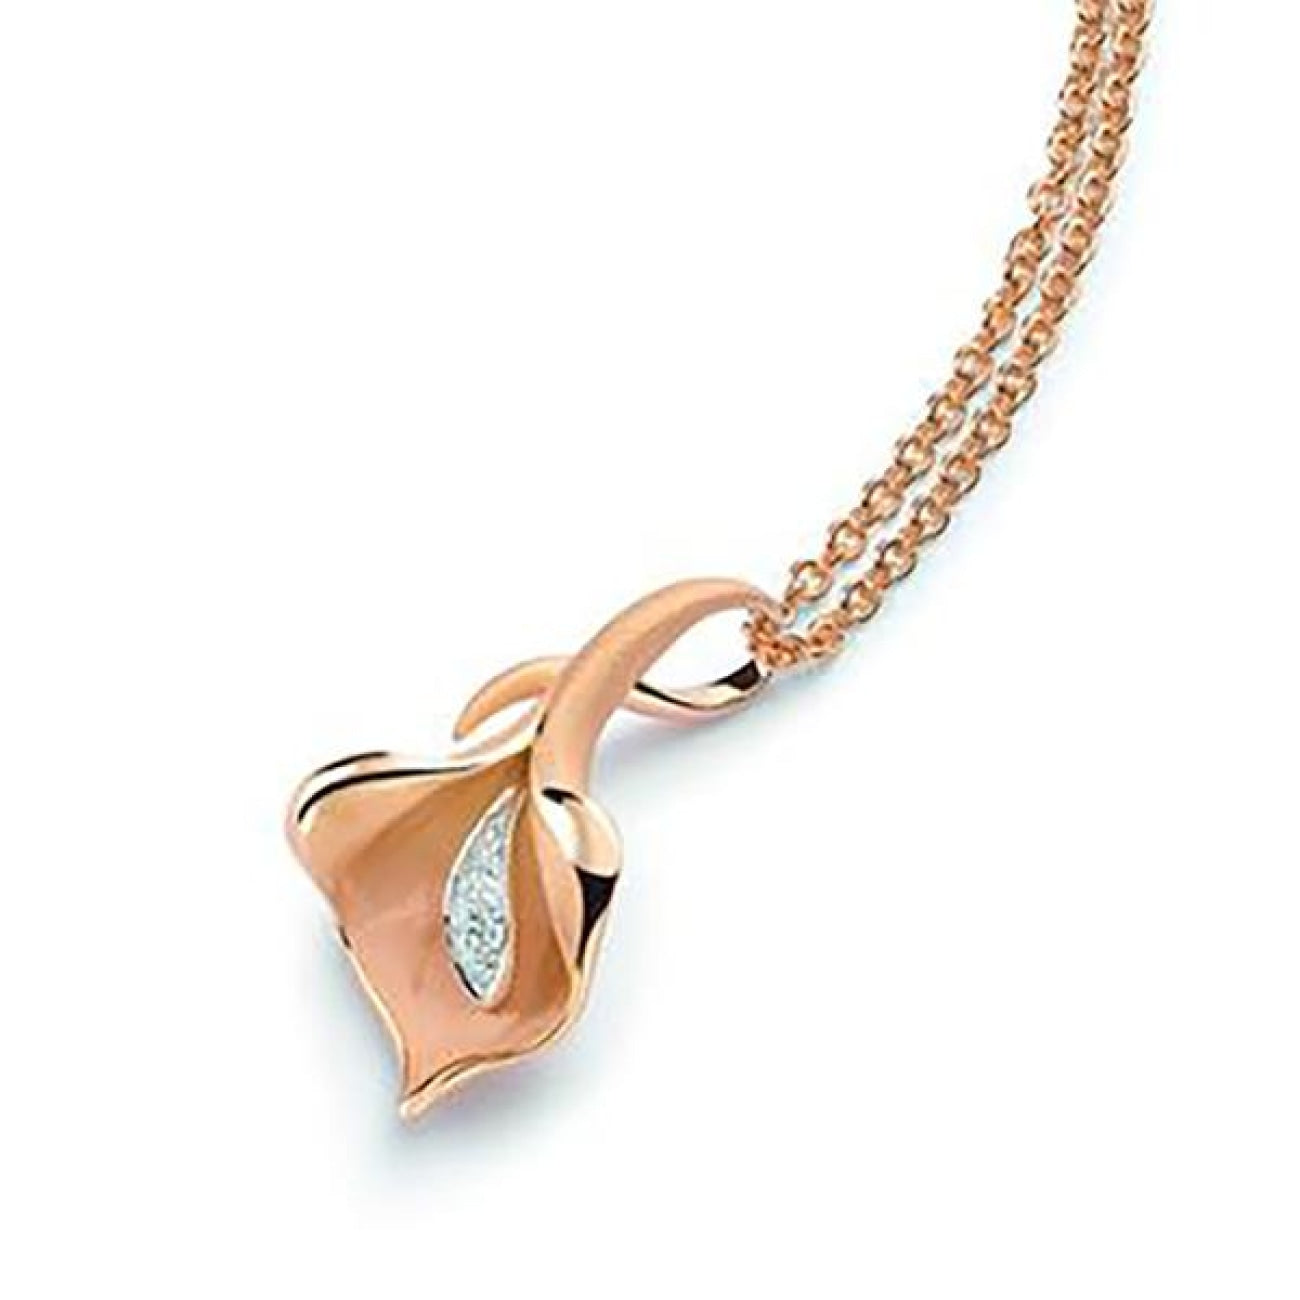 Anna Maria Cammilli Jewelry - Calla Lilly Large Necklace | Manfredi Jewels